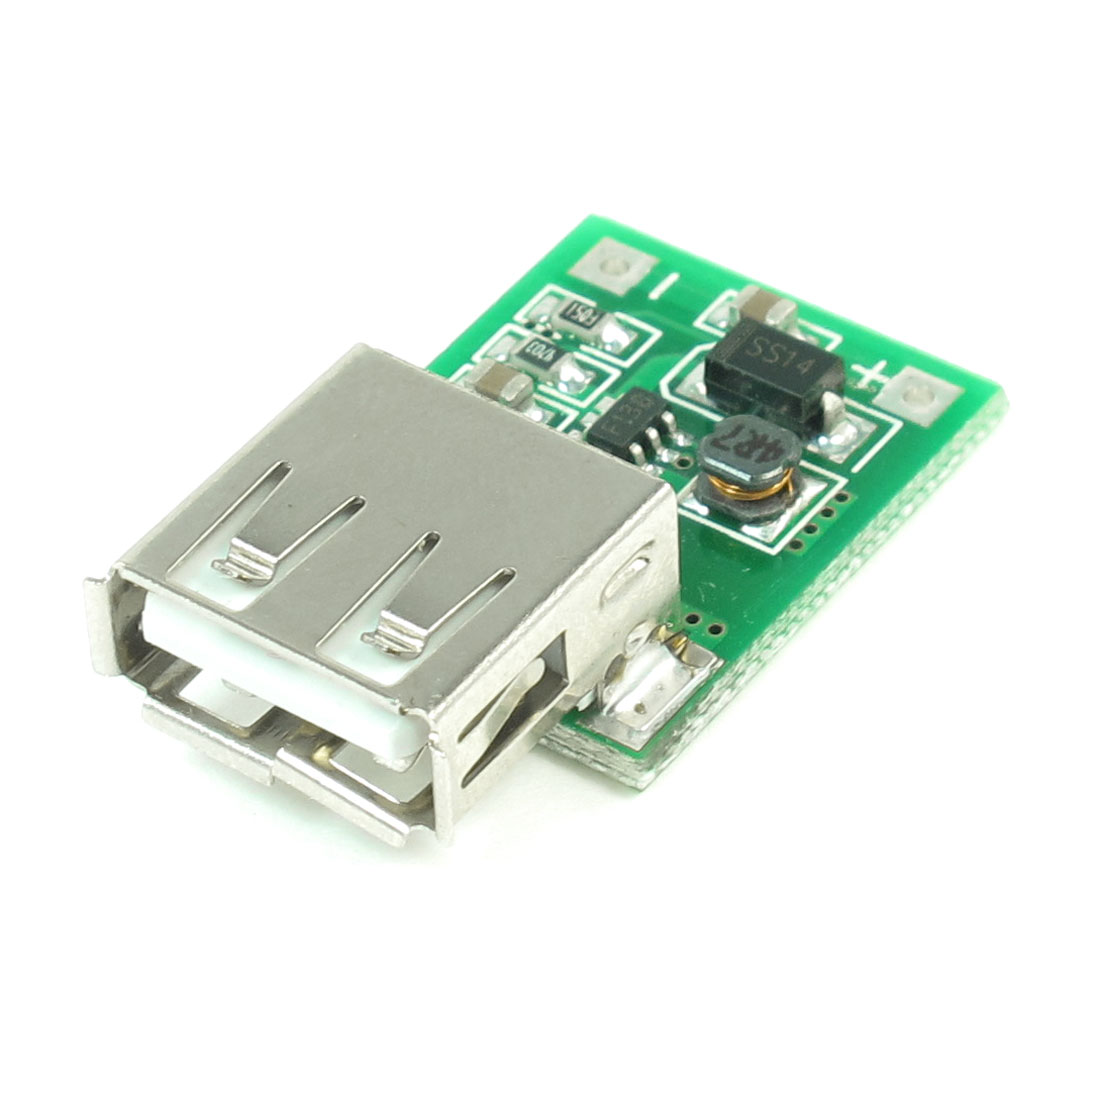 DC-DC Converter Step Up Boost Module 0.9V to 5V USB Charger for MP3 MP4